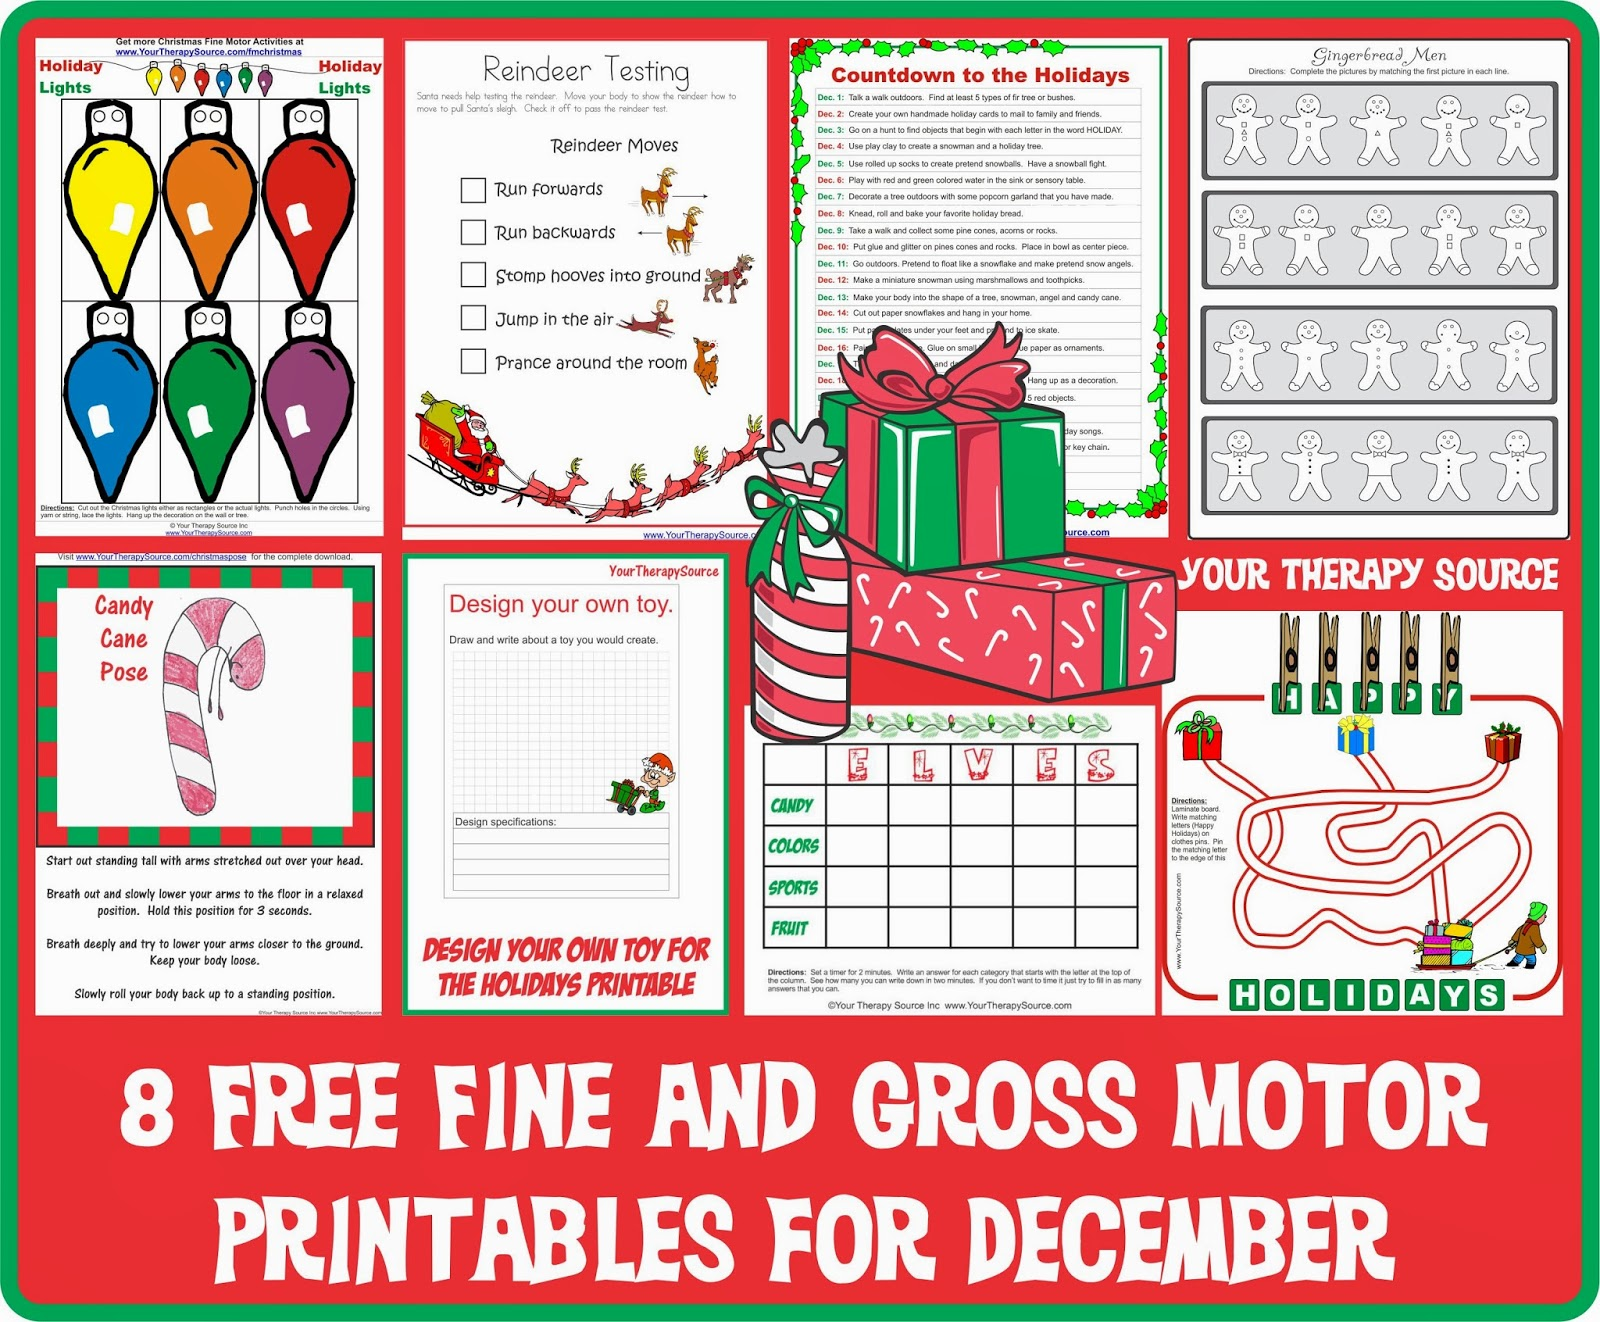 8 Free Printable Fine And Gross Motor Activities For December